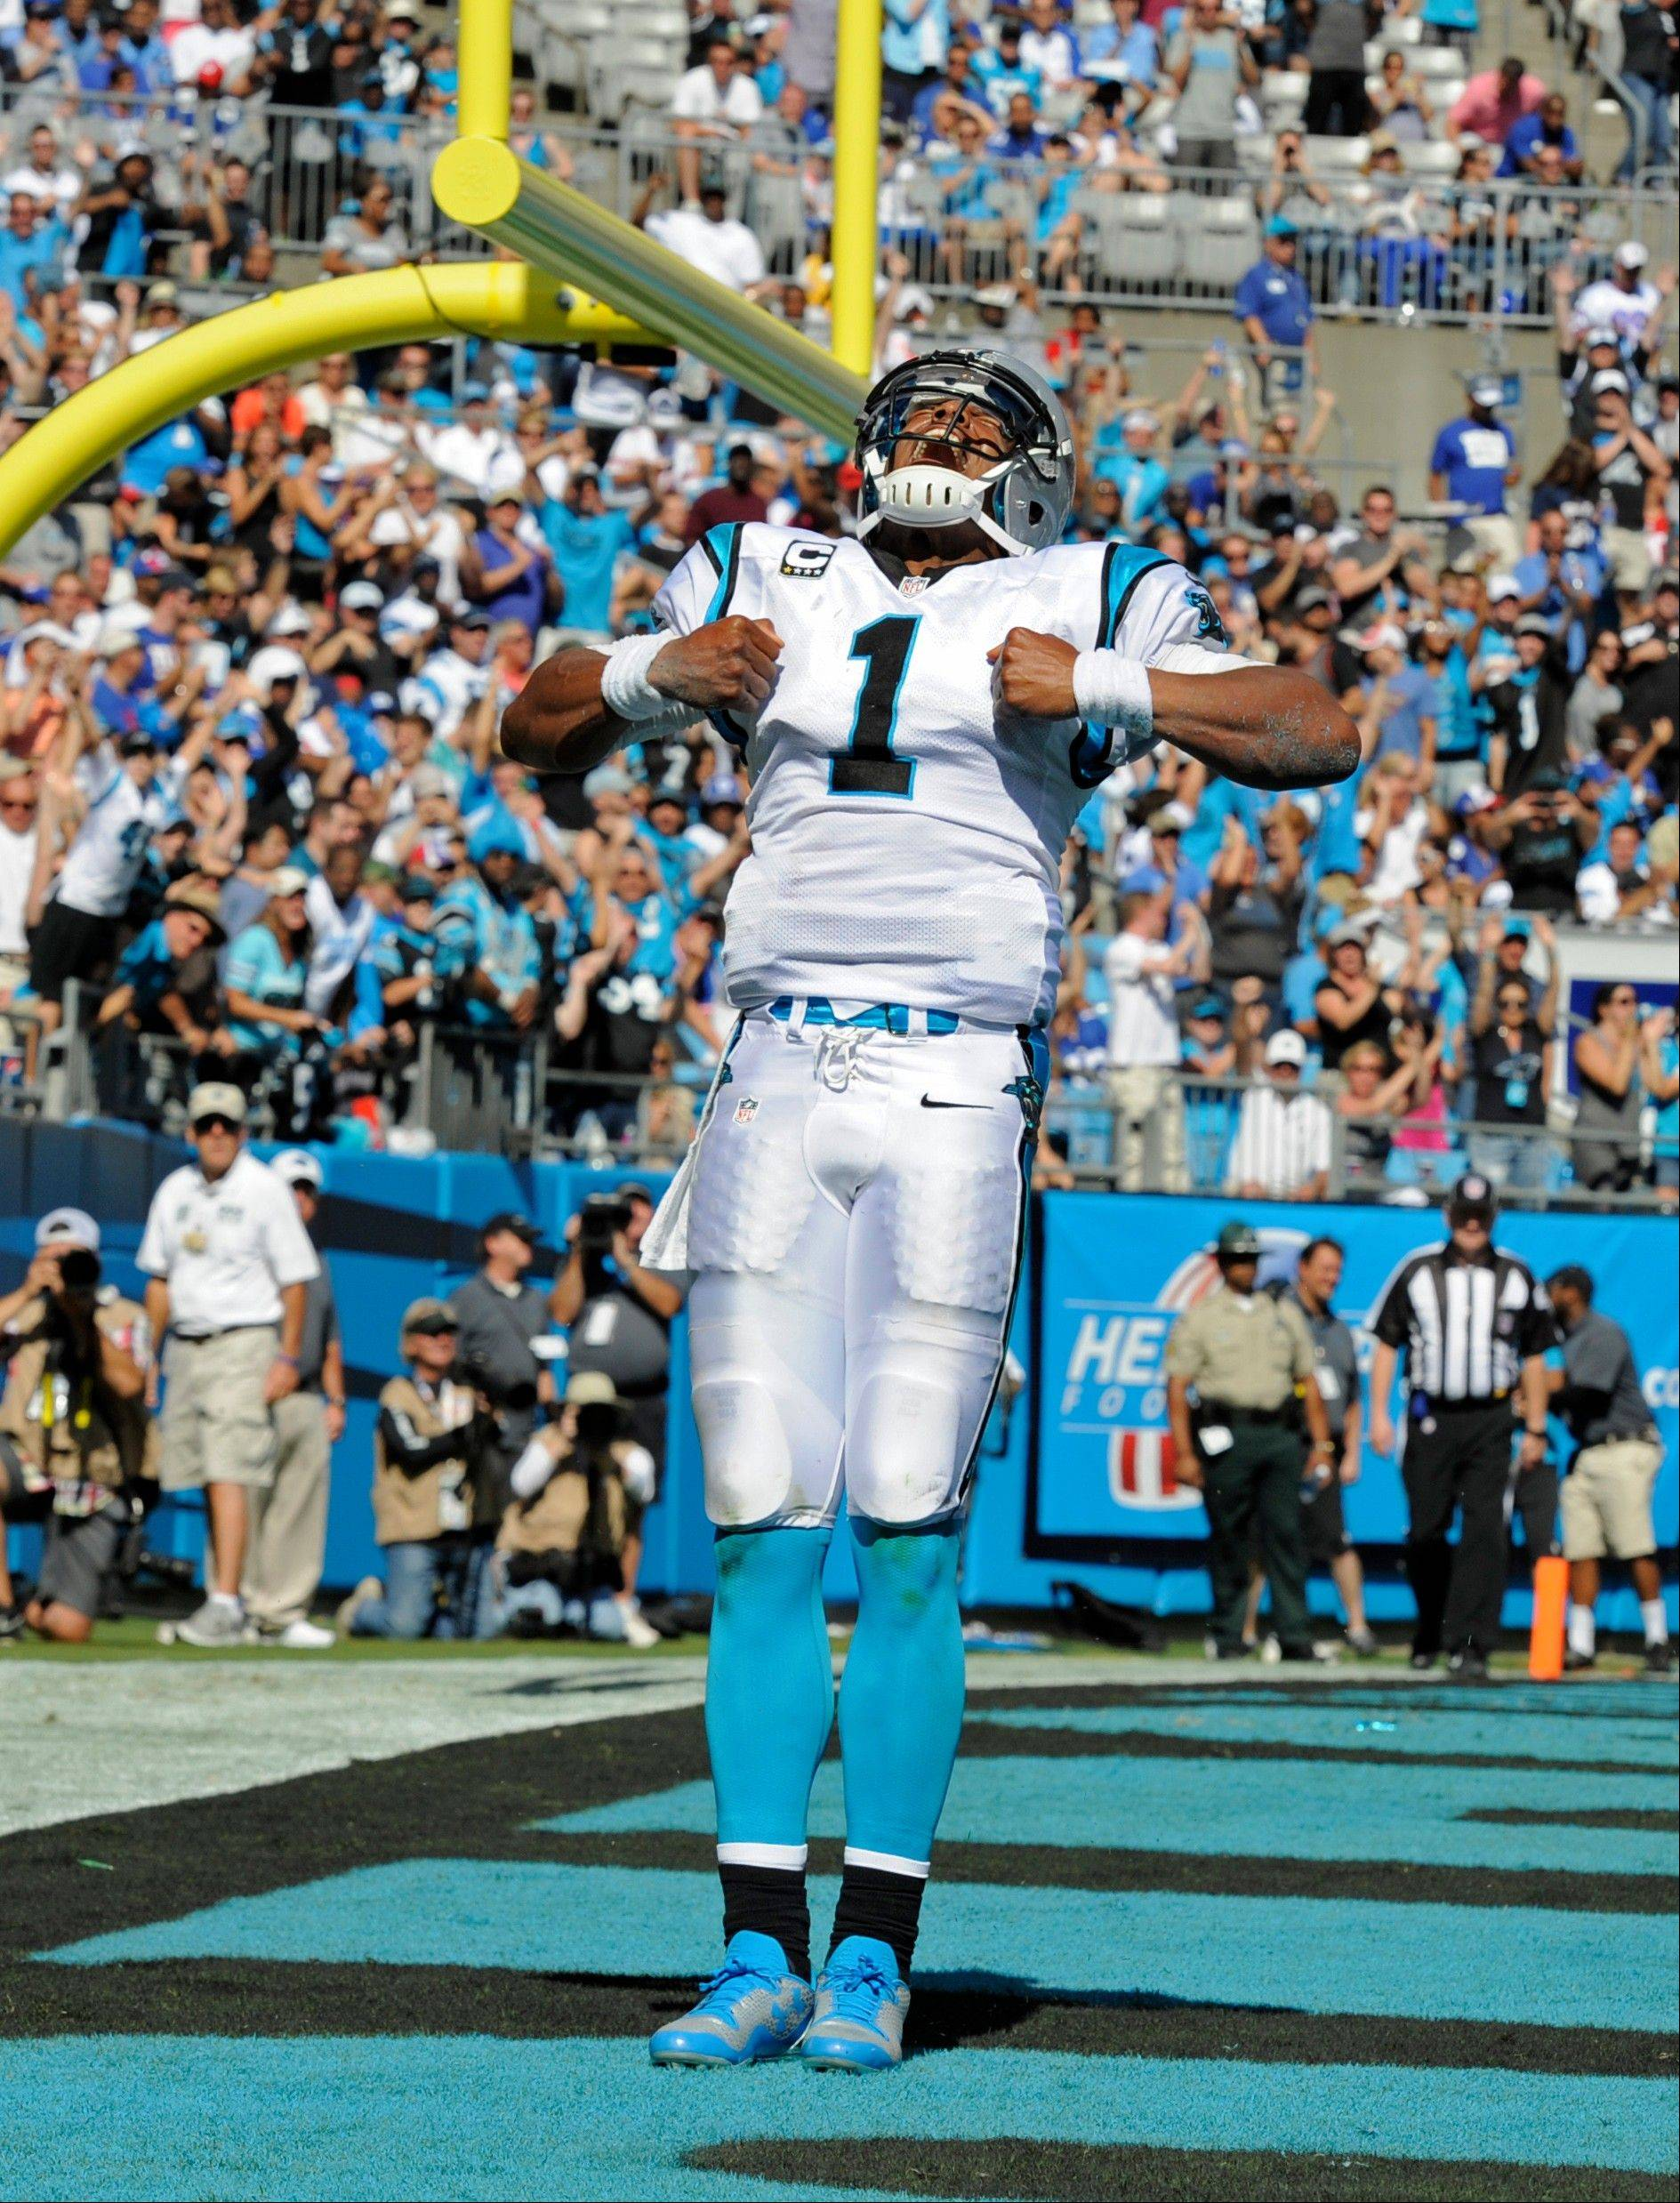 Carolina Panthers' Cam Newton (1) celebrates his touchdown run against the New York Giants during the second half of an NFL football game in Charlotte, N.C., Sunday, Sept. 22, 2013.